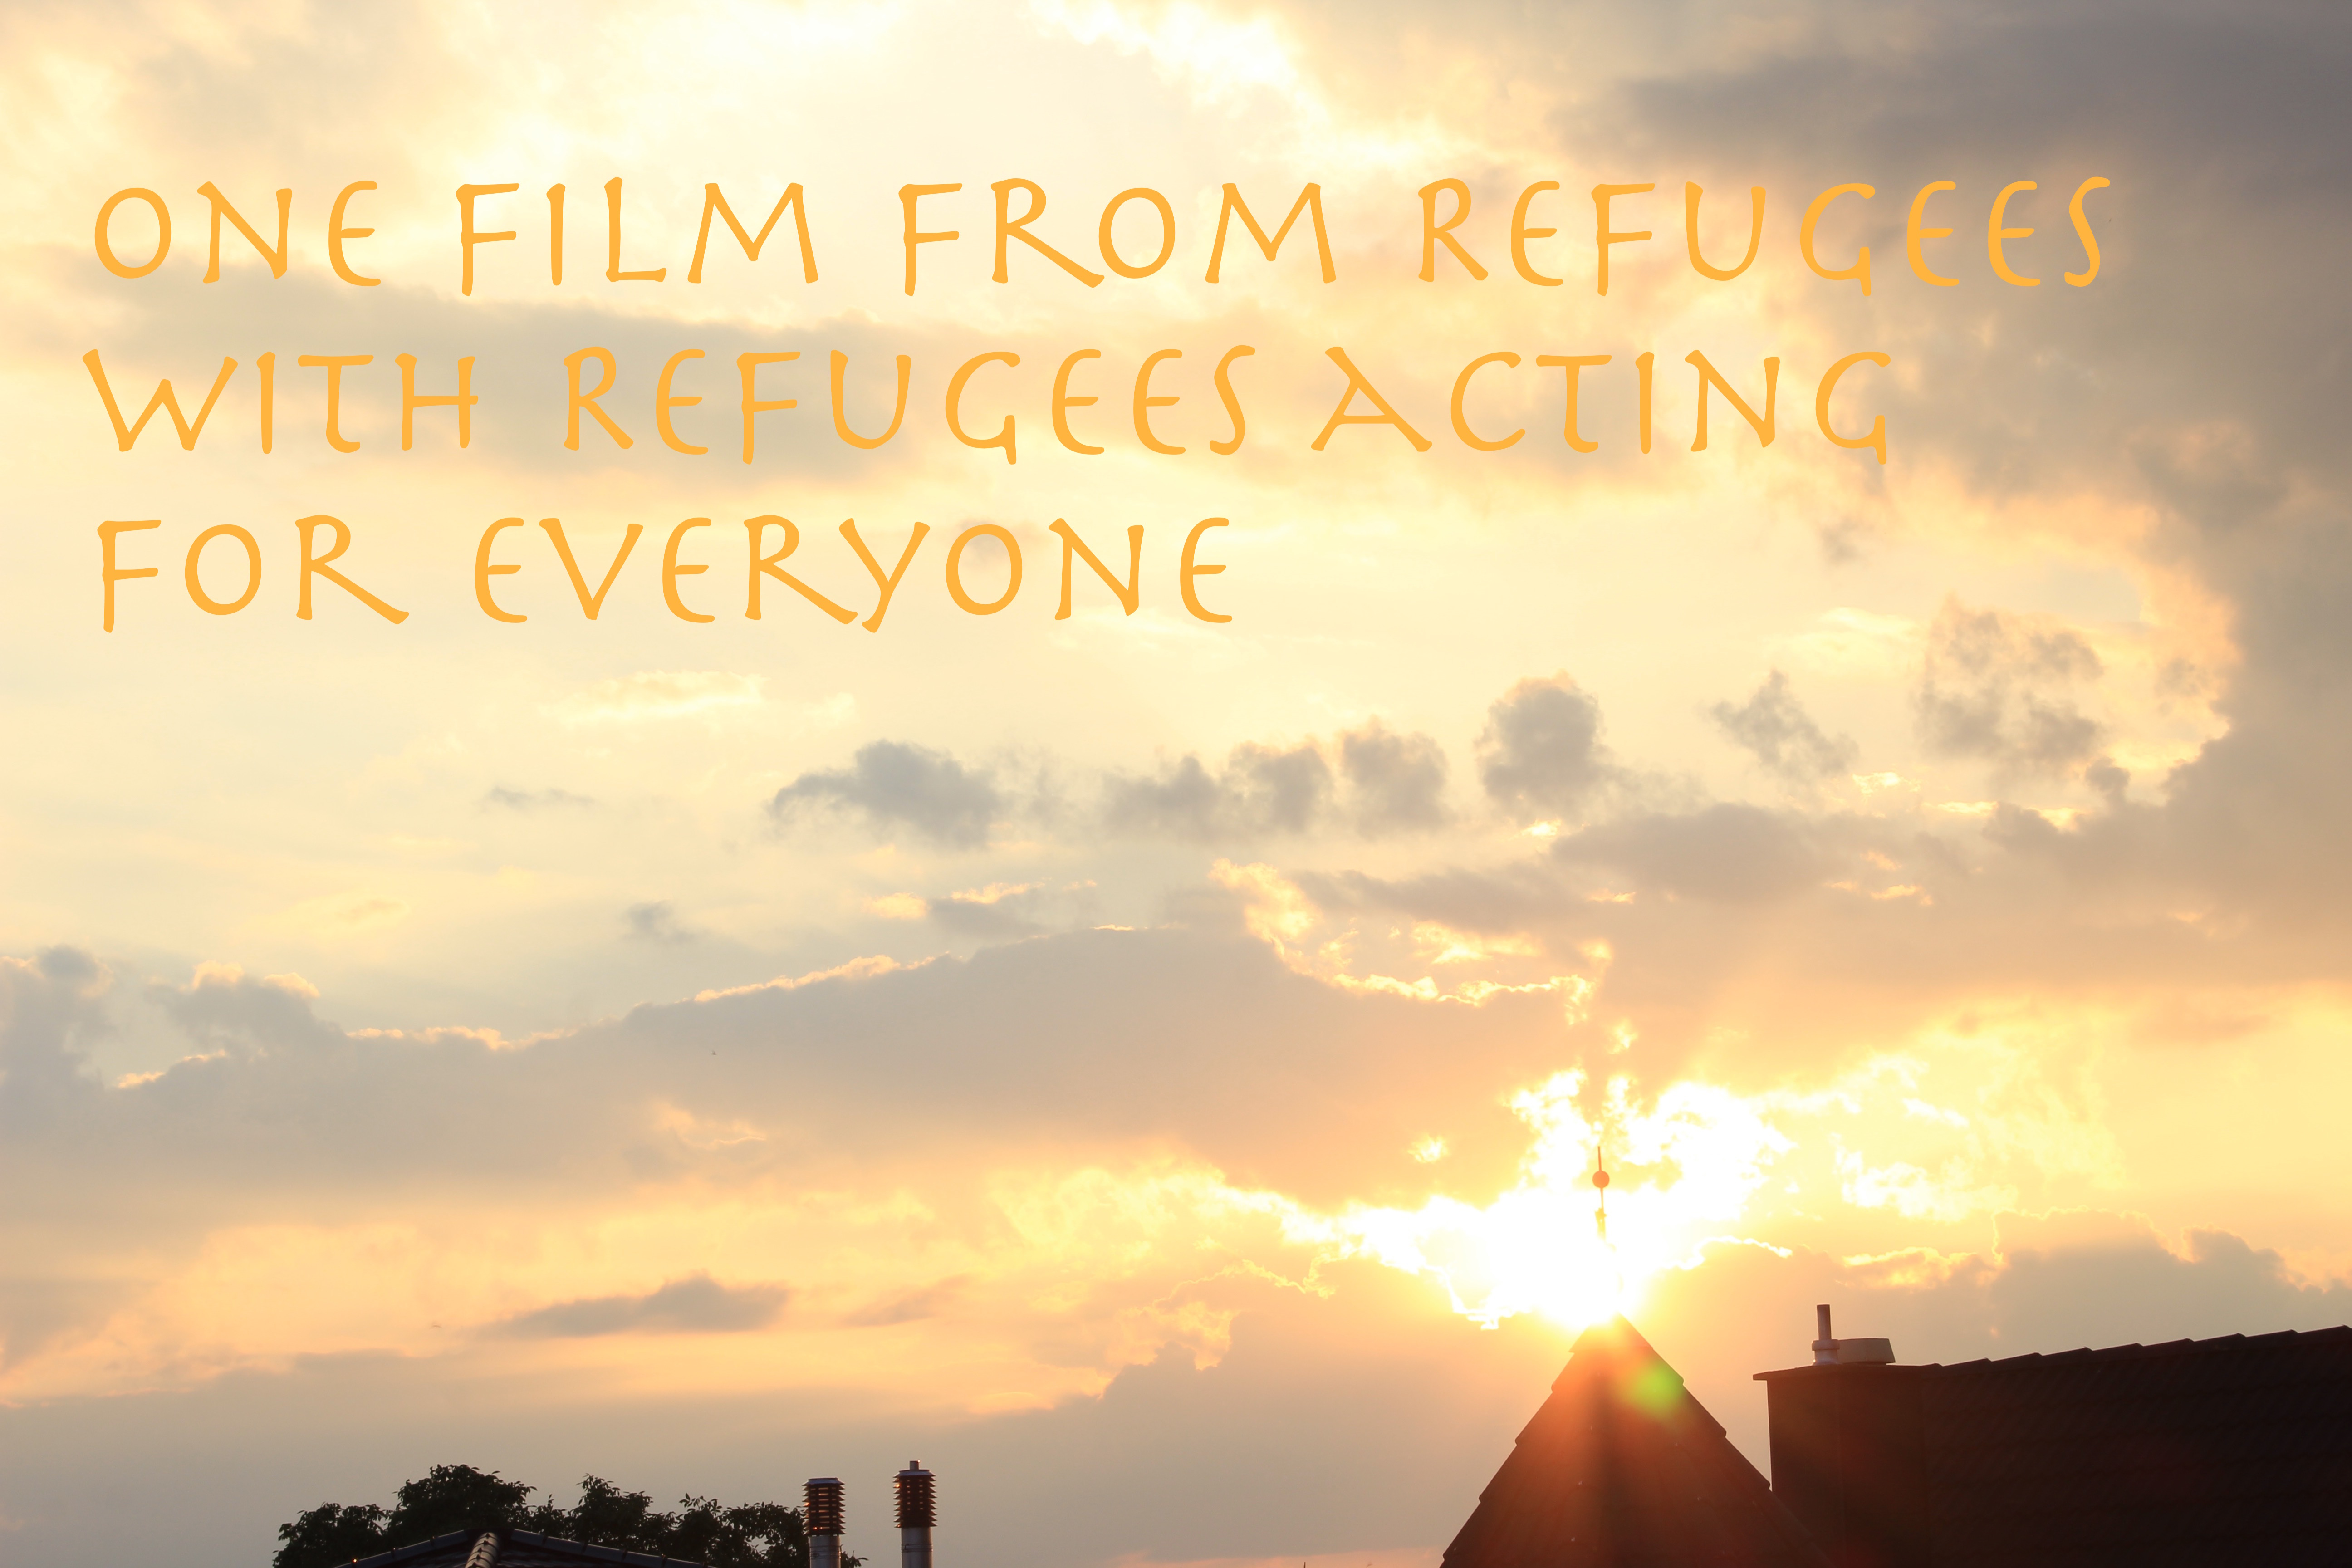 From refugees, with refugees